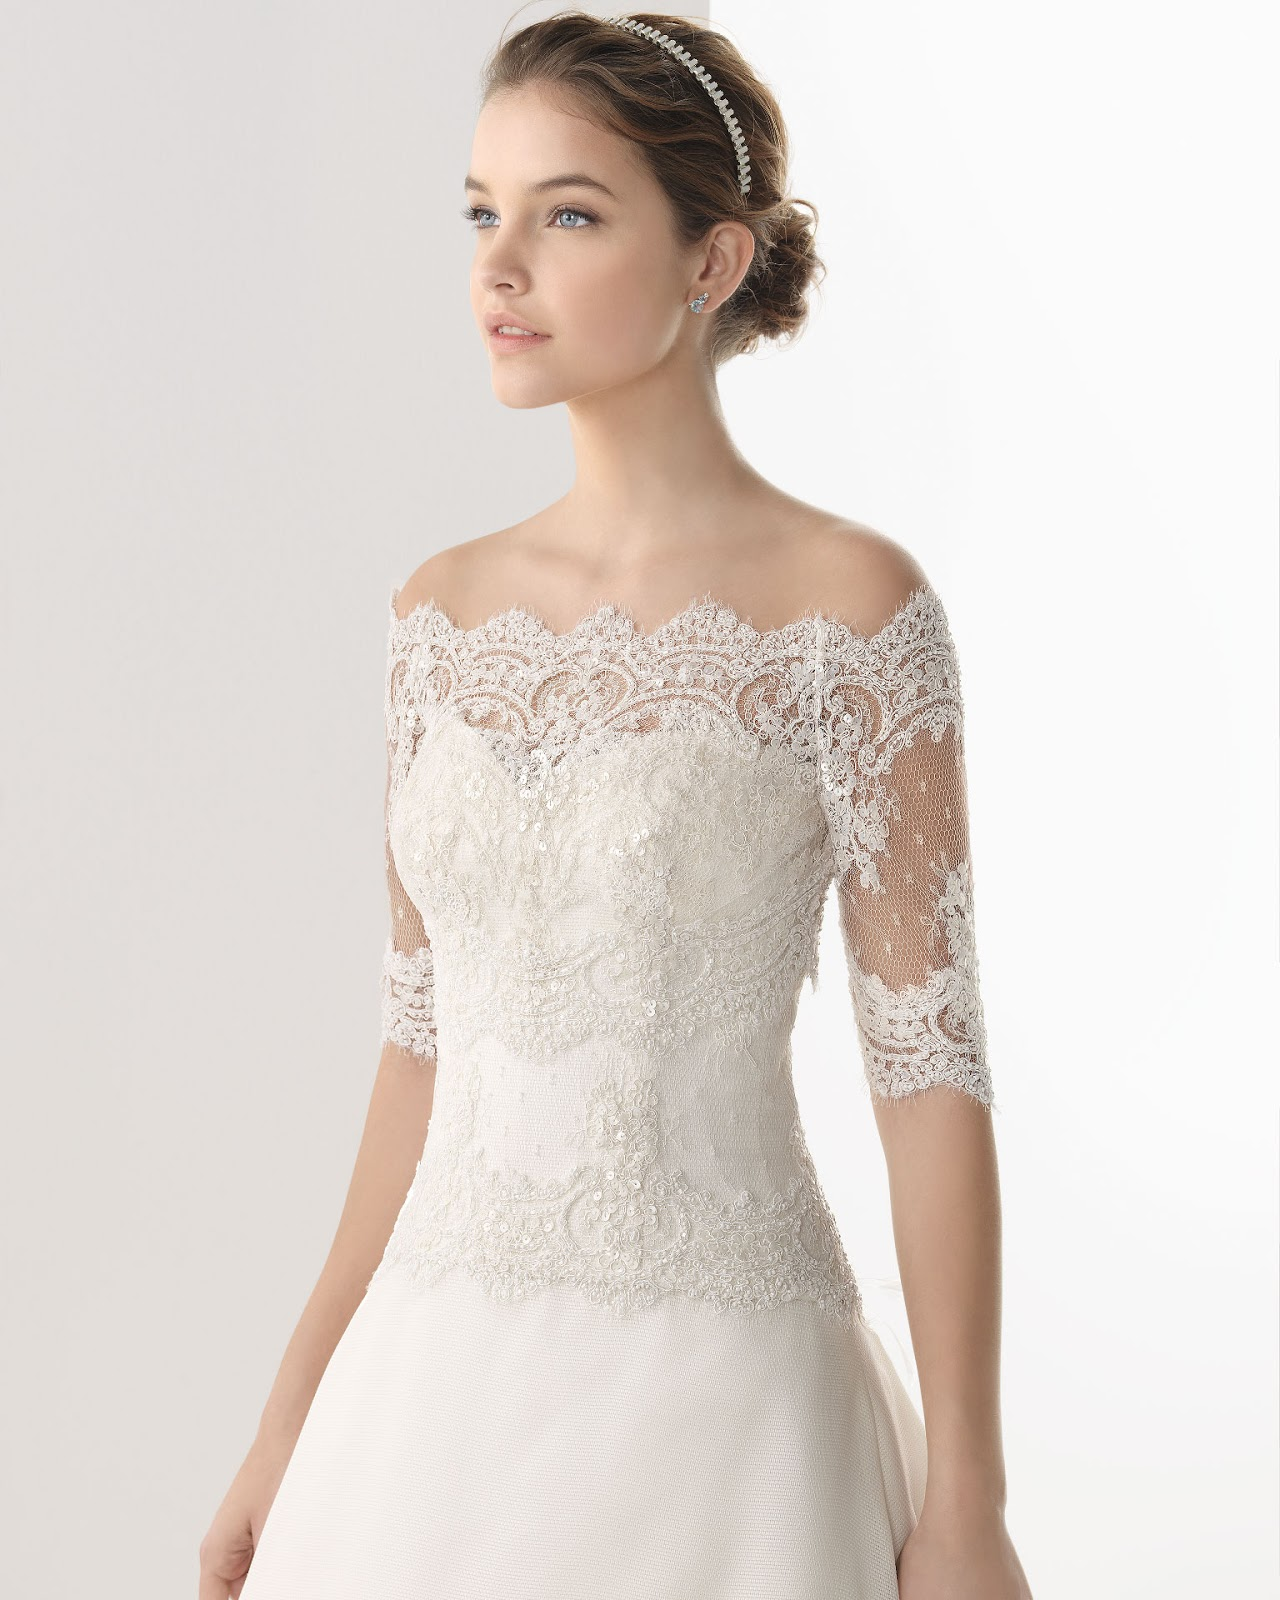 Photos Of Lace Wedding Gowns : Dressybridal wedding dresses with lace long sleeves and